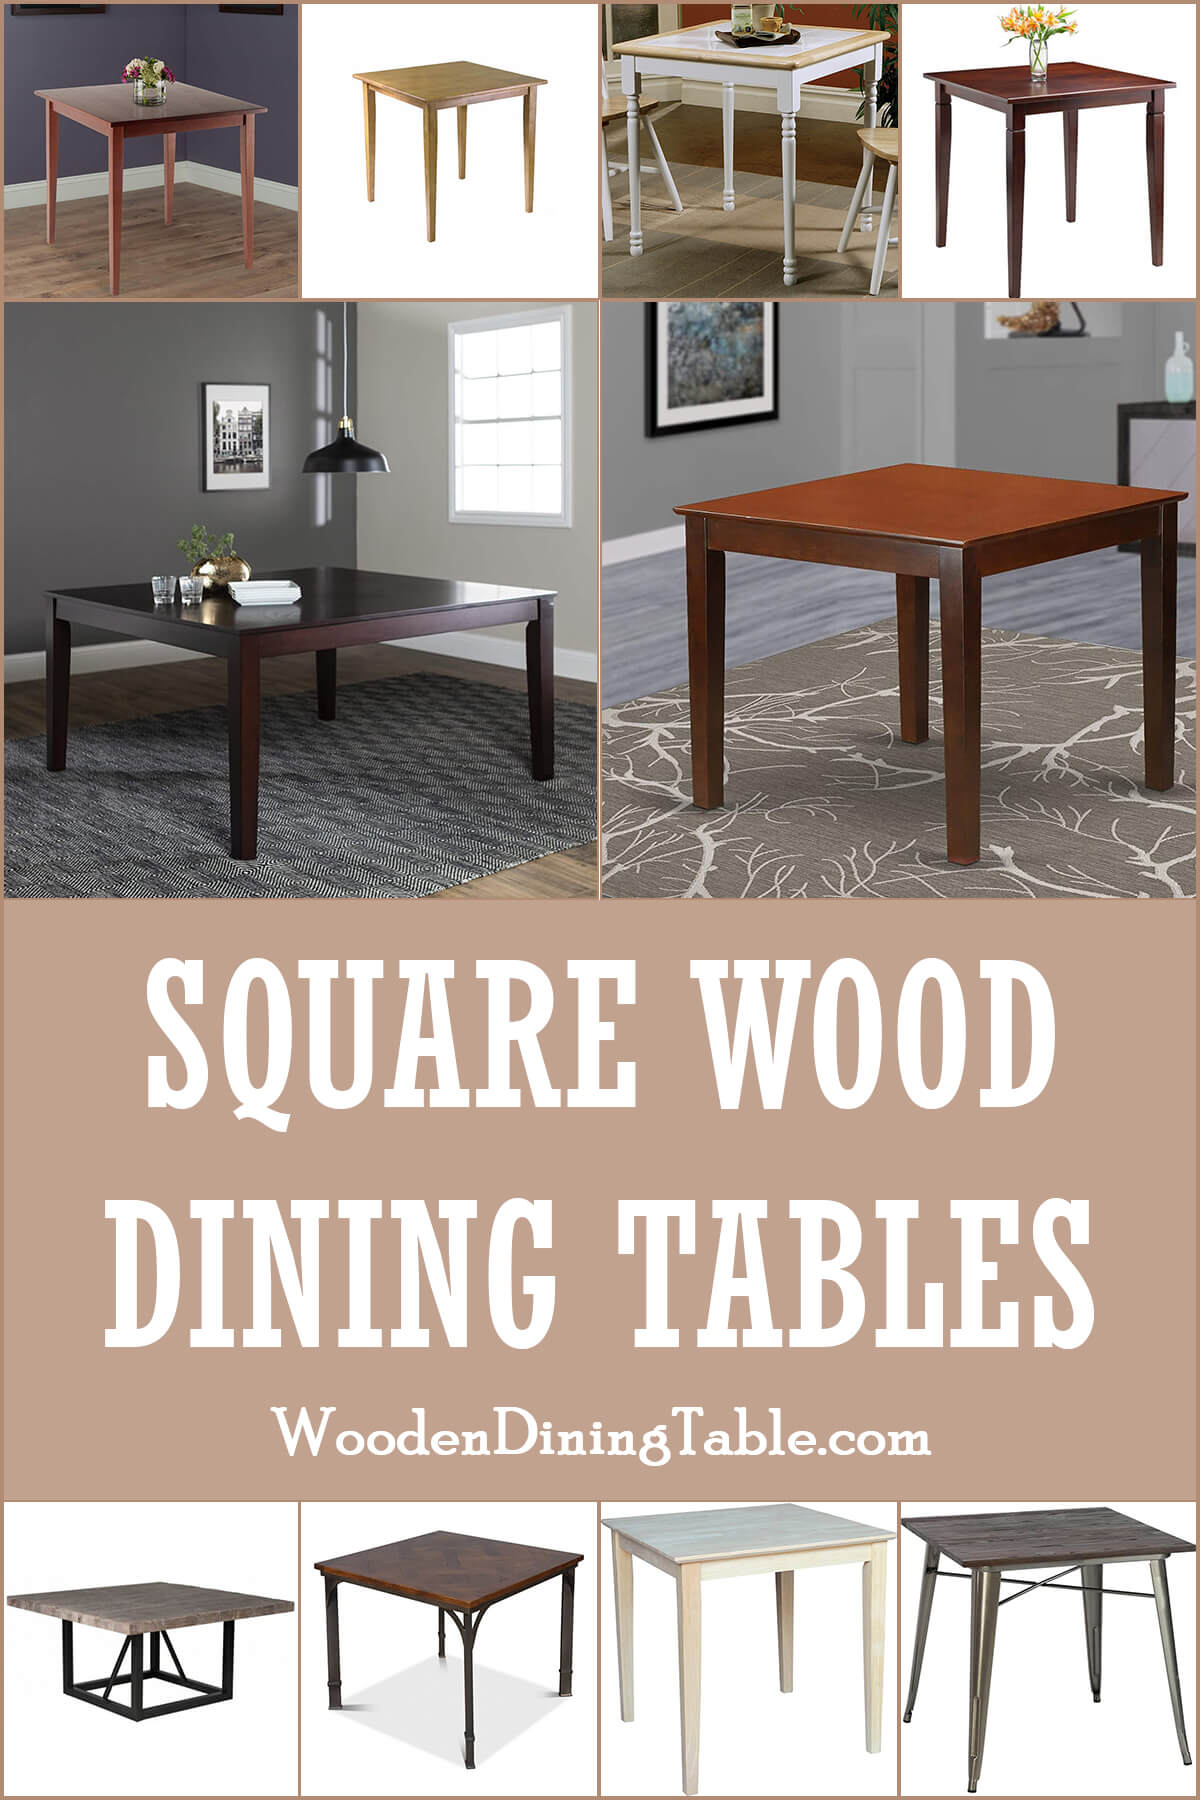 SQUARE-WOOD-DINING-TABLES-1